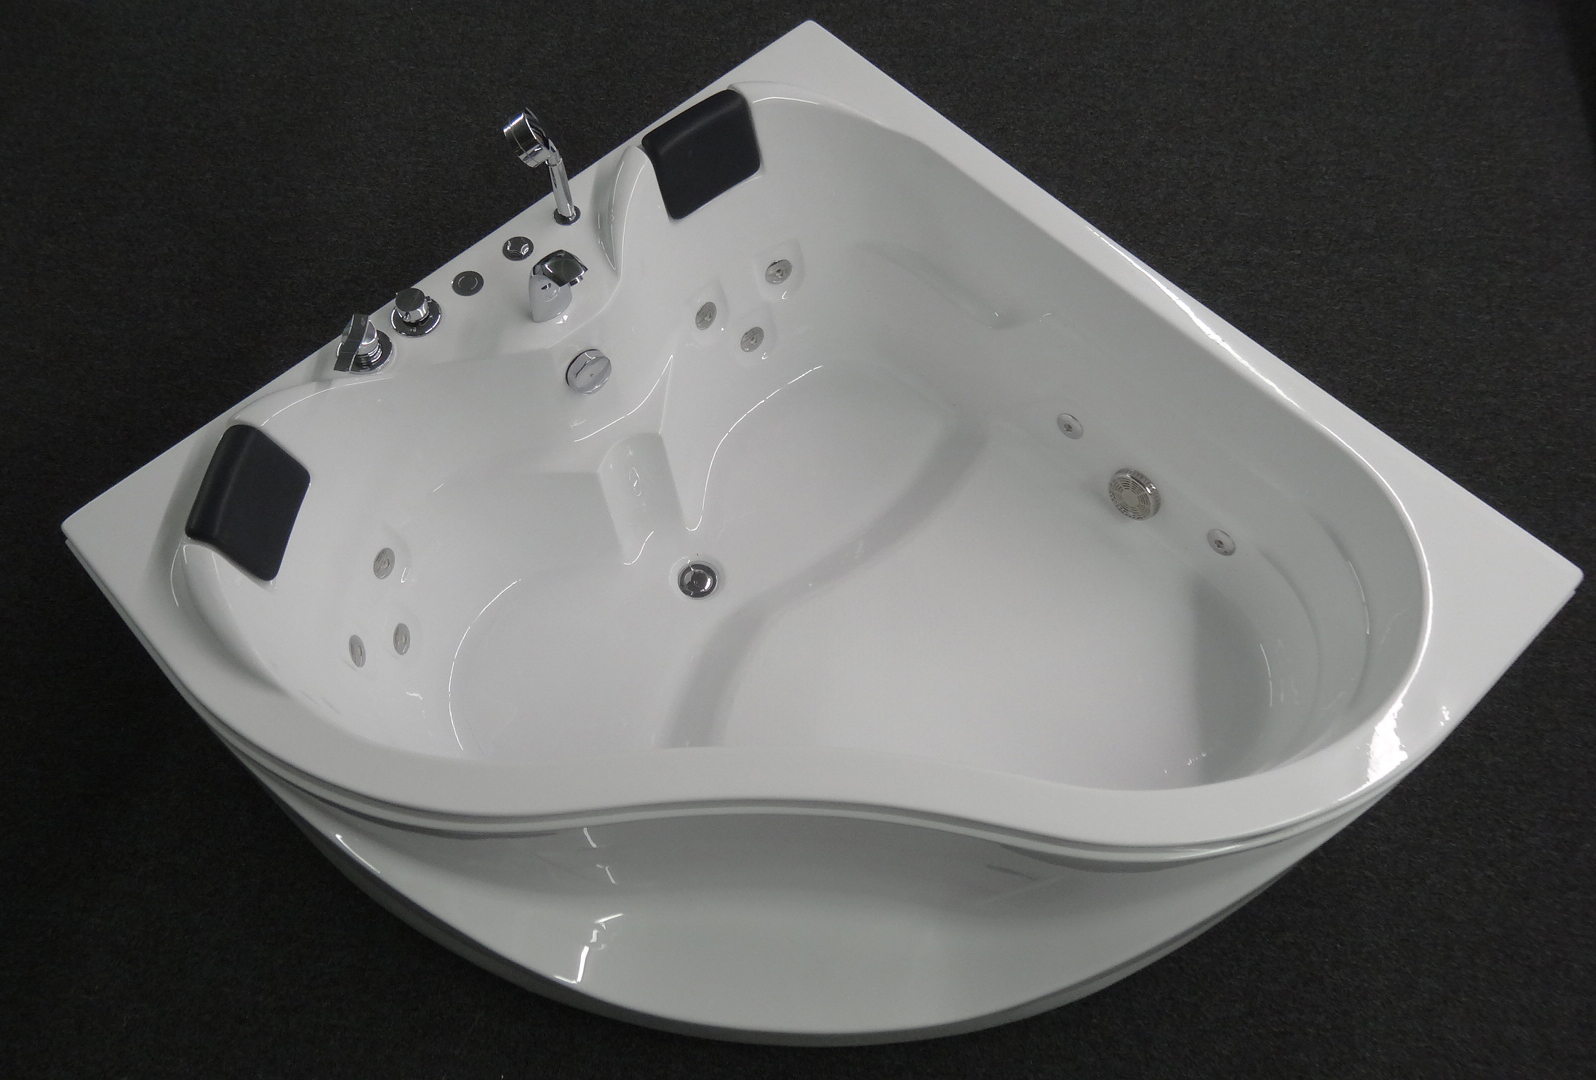 Beautiful Jacuzzi Tub Jet Covers Stock Of Bathtub Design